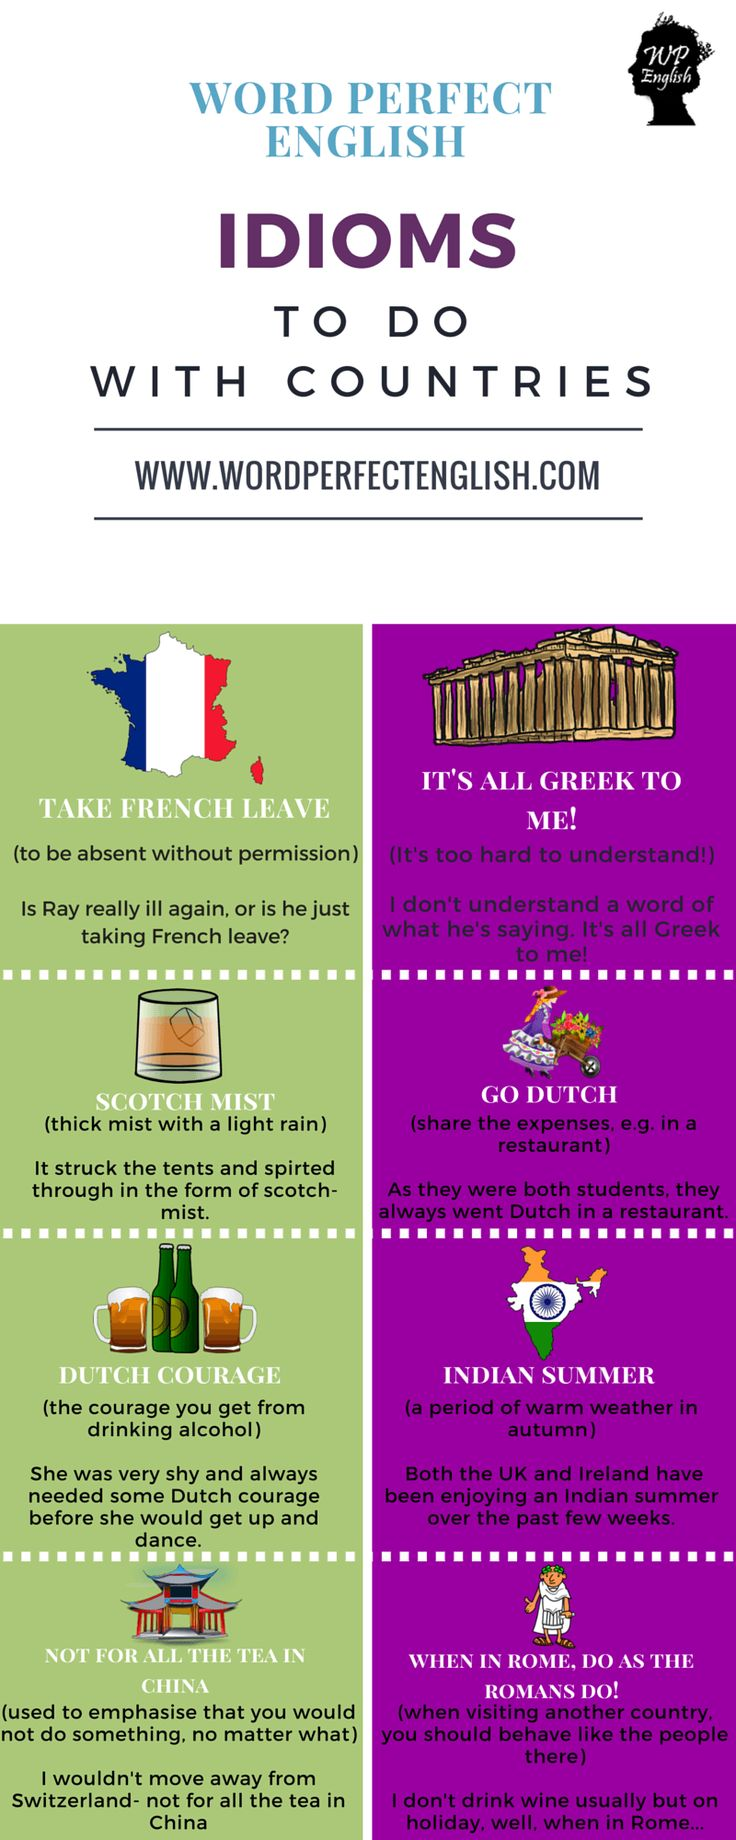 Idioms to do with Countries